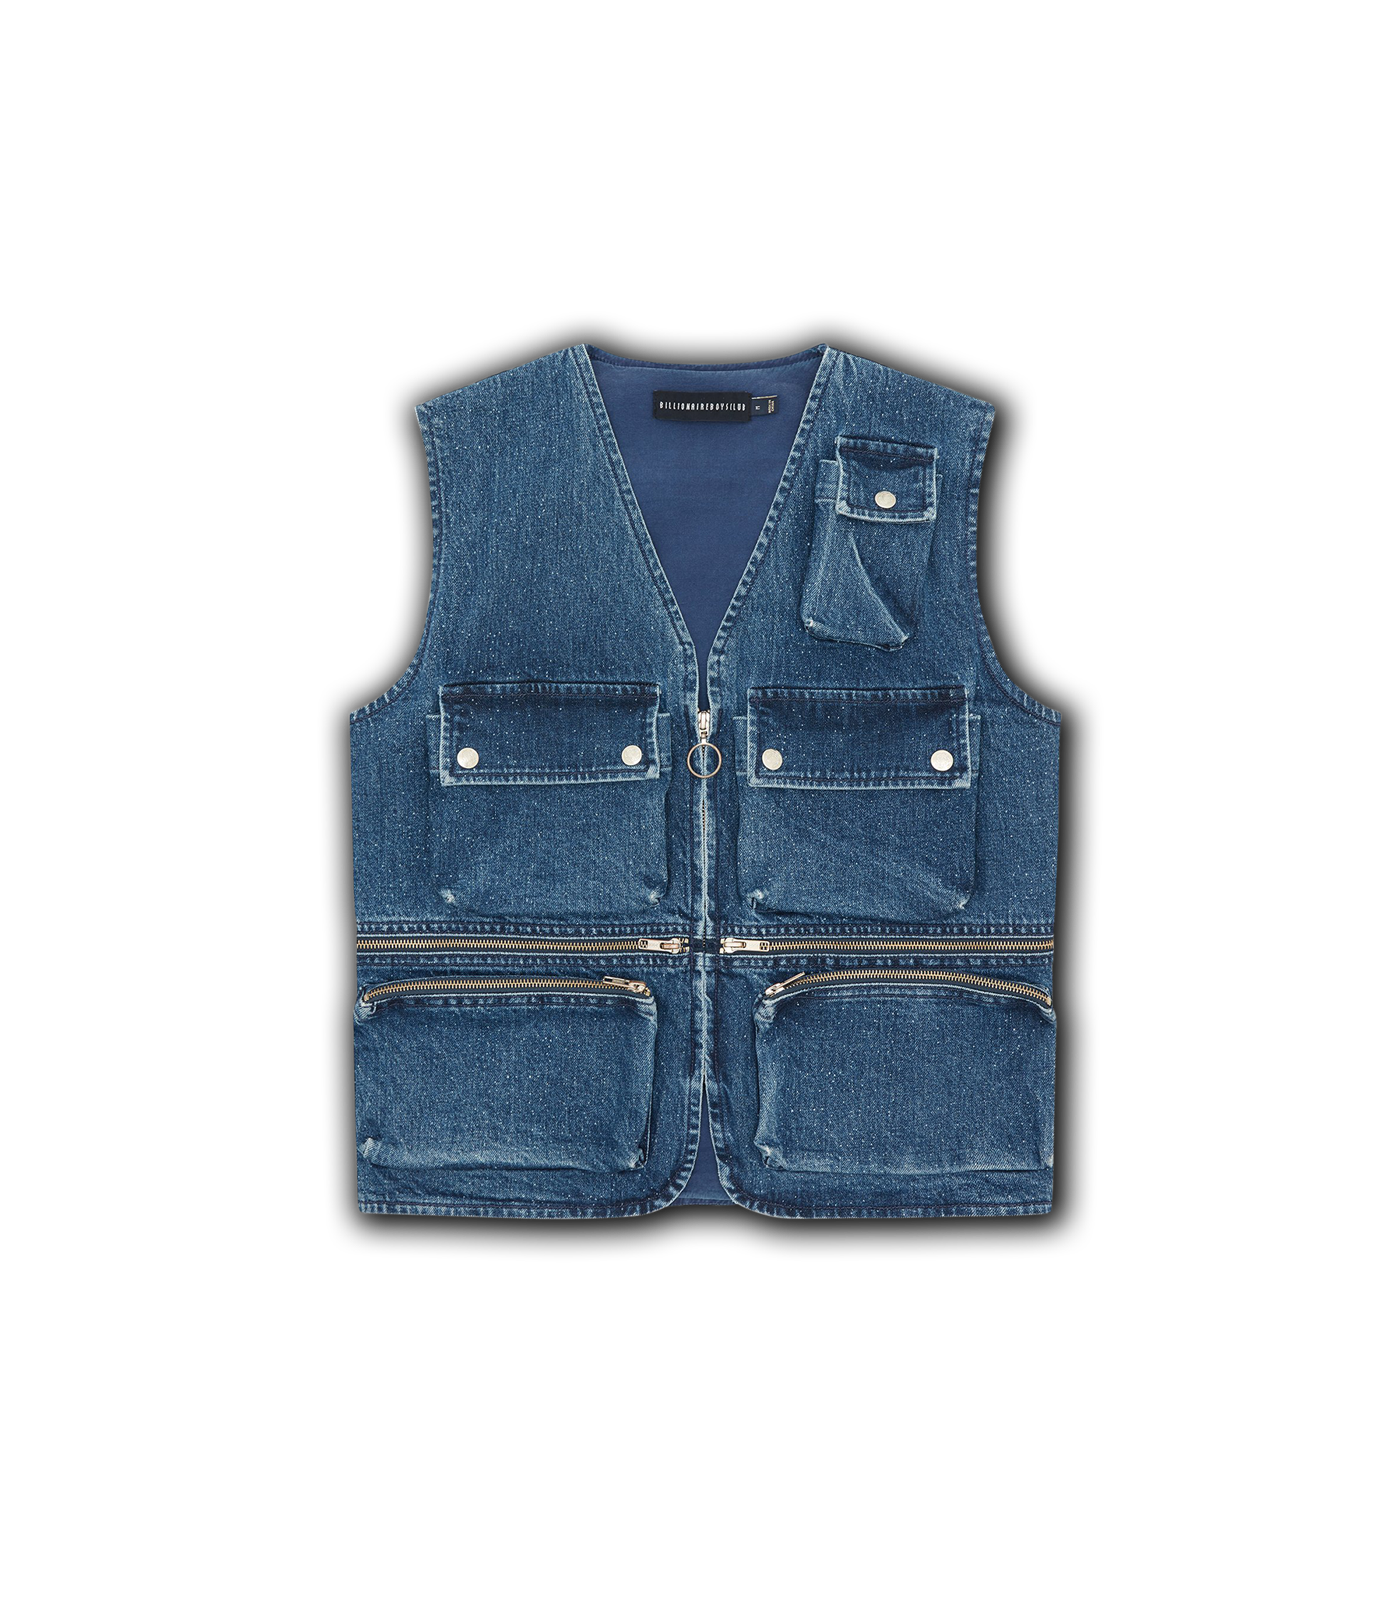 MULTI POCKET DENIM VEST - BLUE